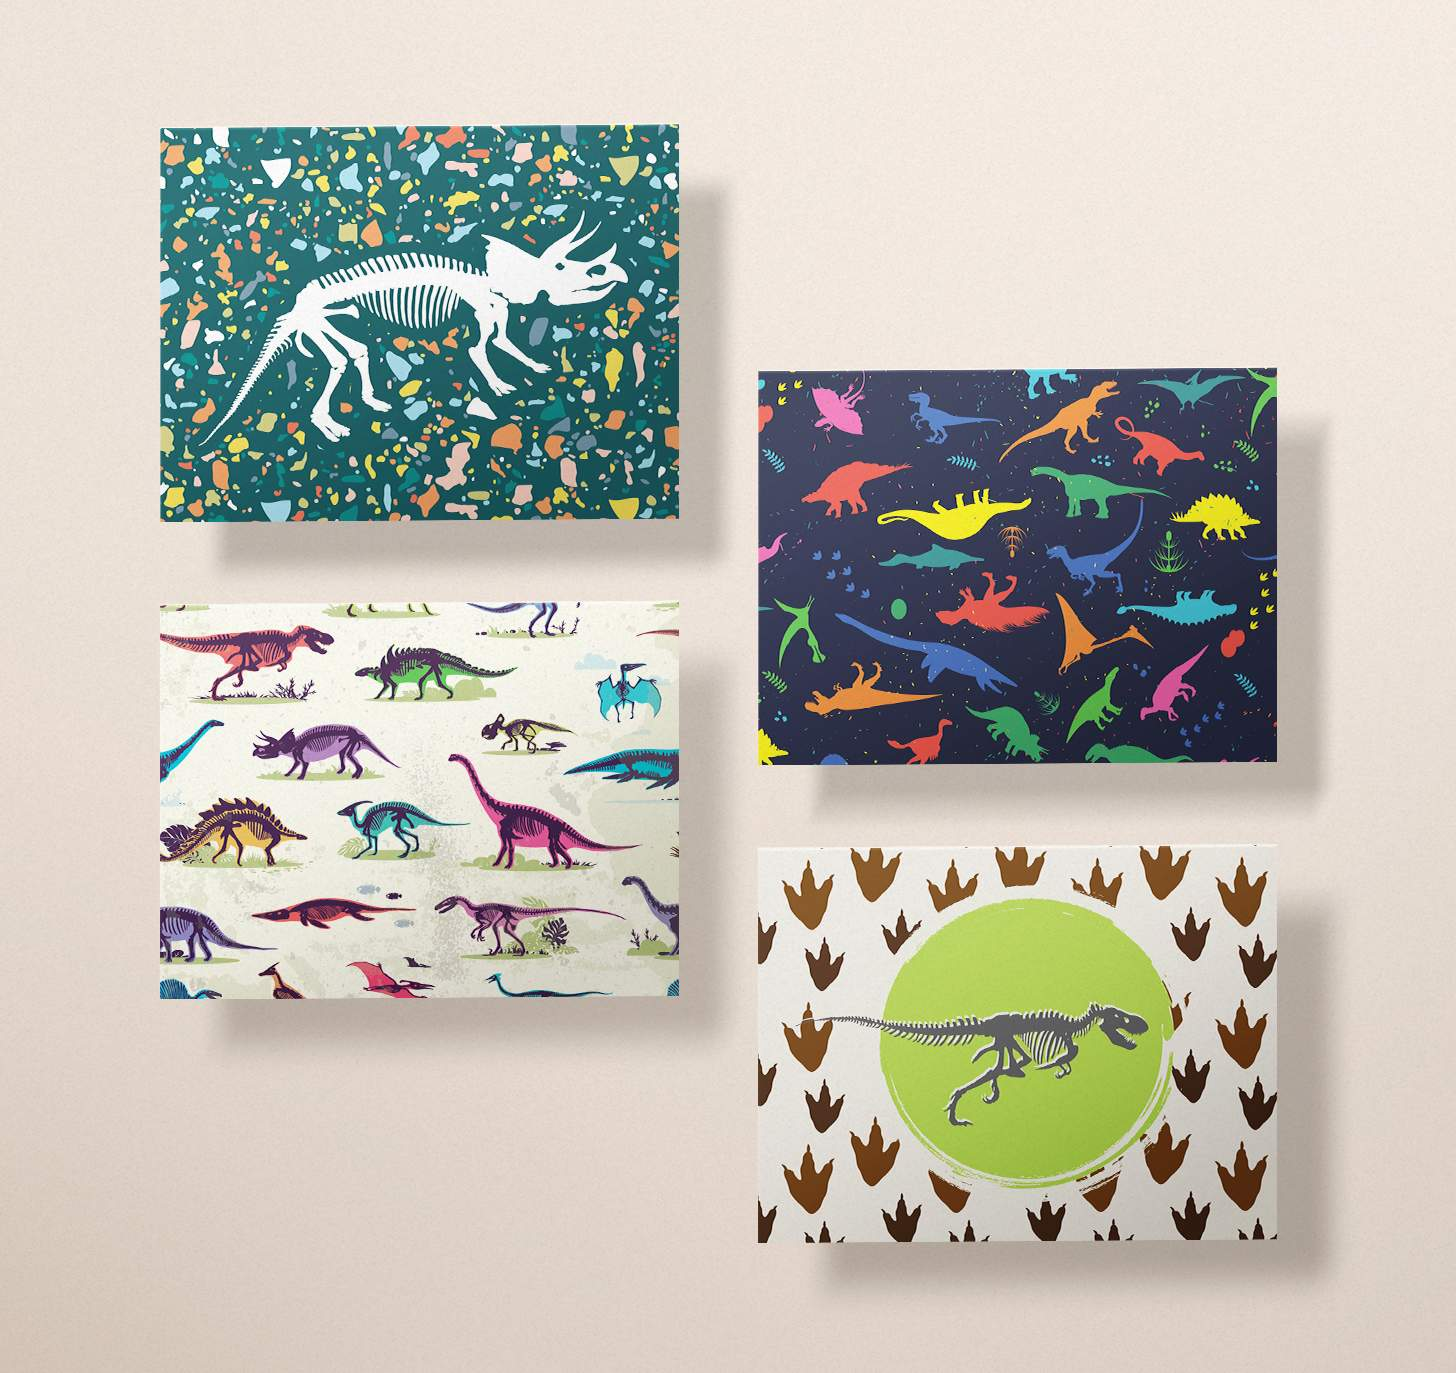 Four cards with featuring dinosaur bones, neon dinosaurs, multicolor dinosaurs, and footprints designs